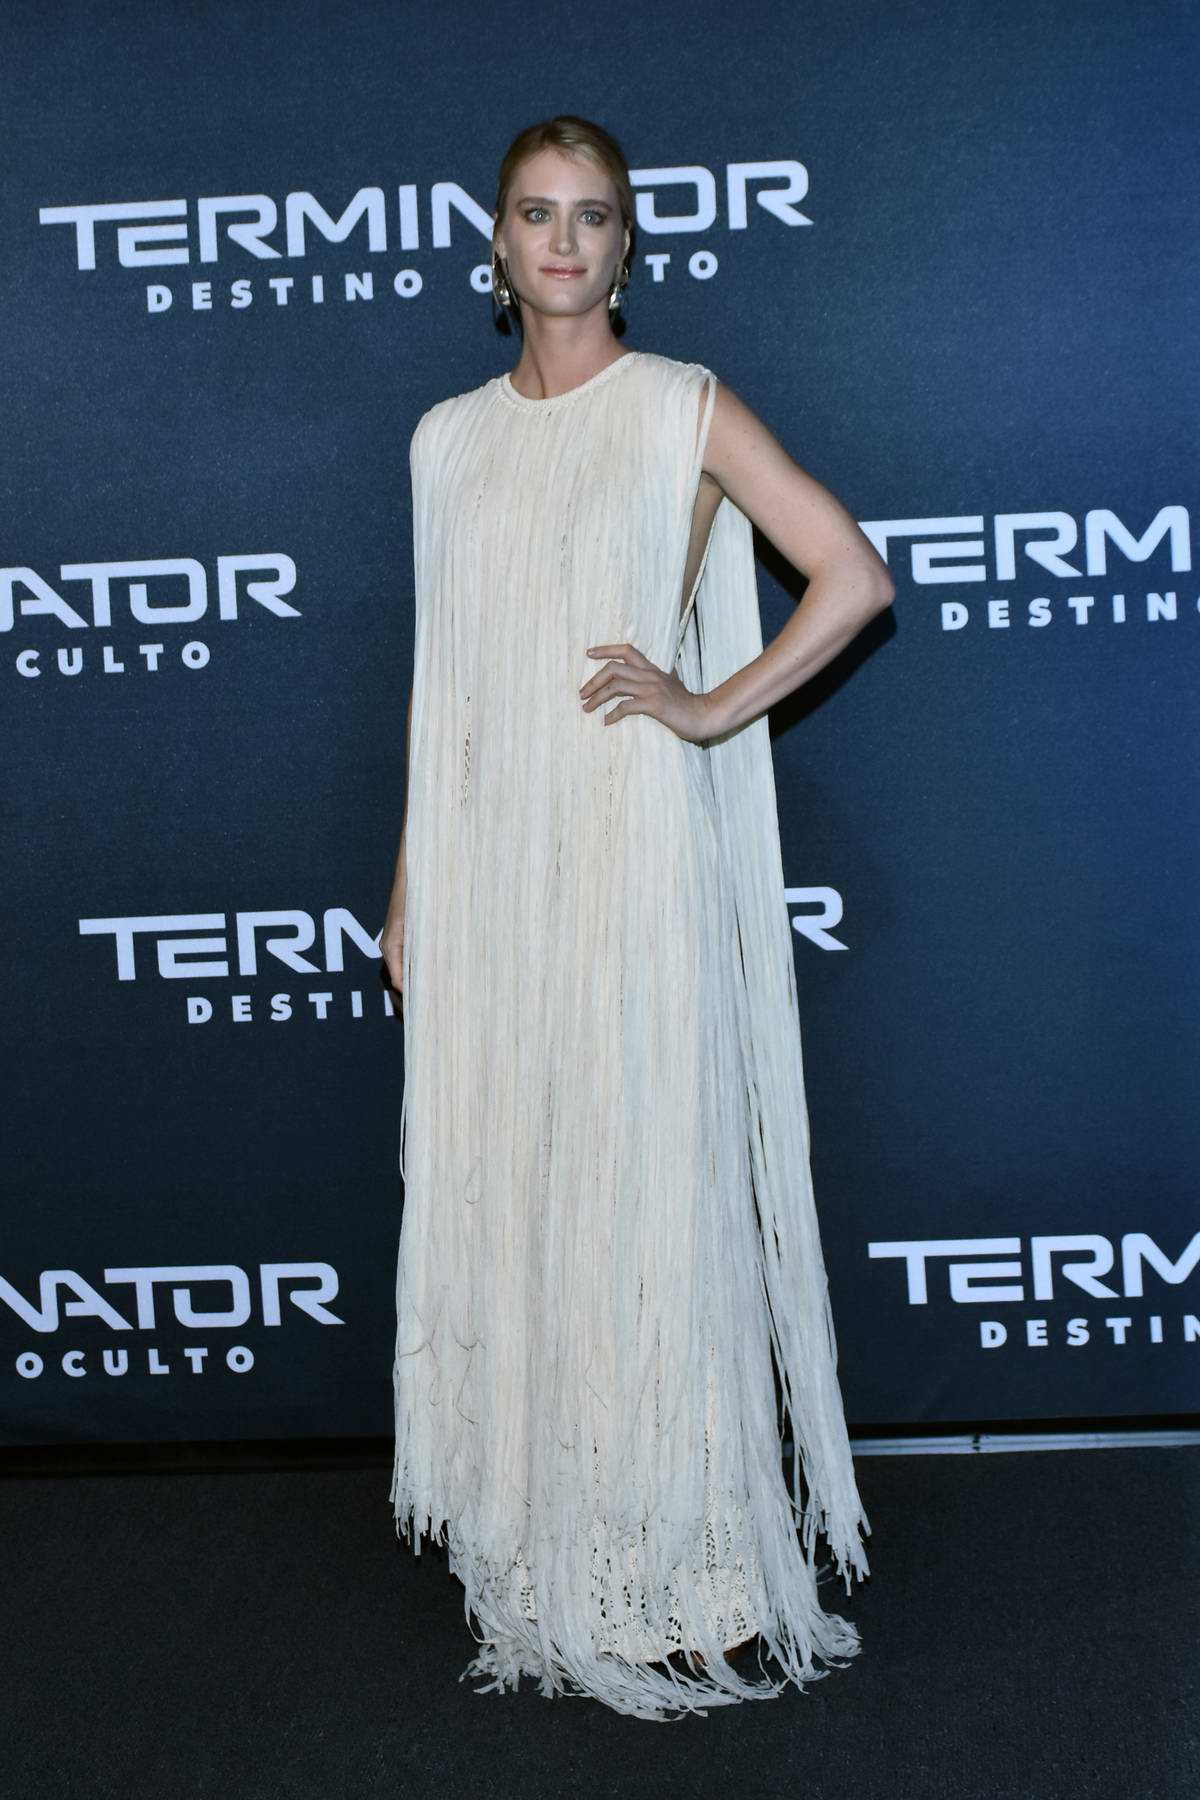 Mackenzie Davis attends the premiere of 'Terminator: Dark Fate' in Mexico City, Mexico